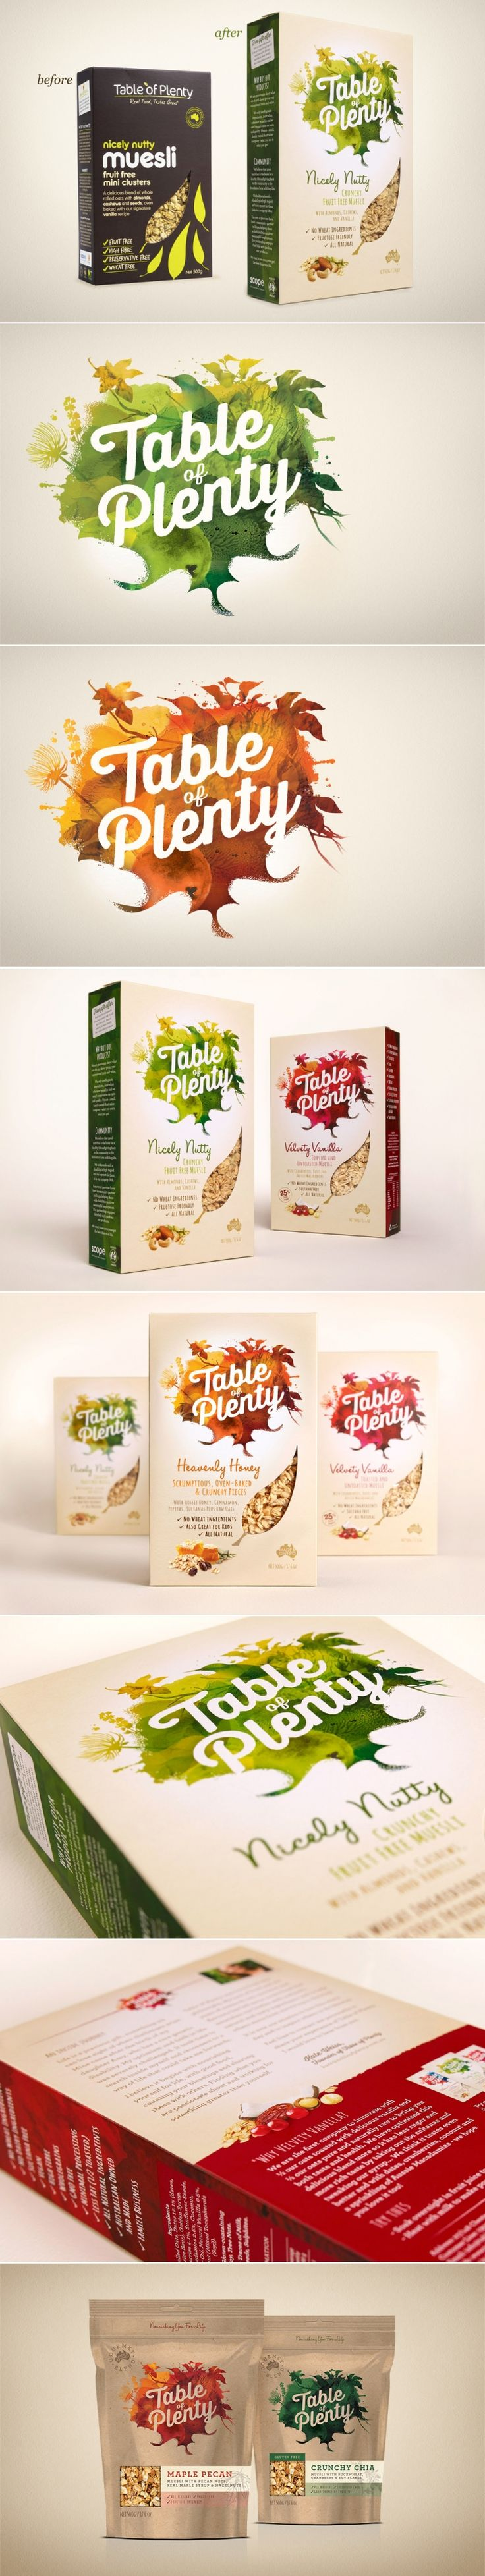 Before & After: Table of Plenty — The Dieline | Packaging & Branding Design & Innovation News